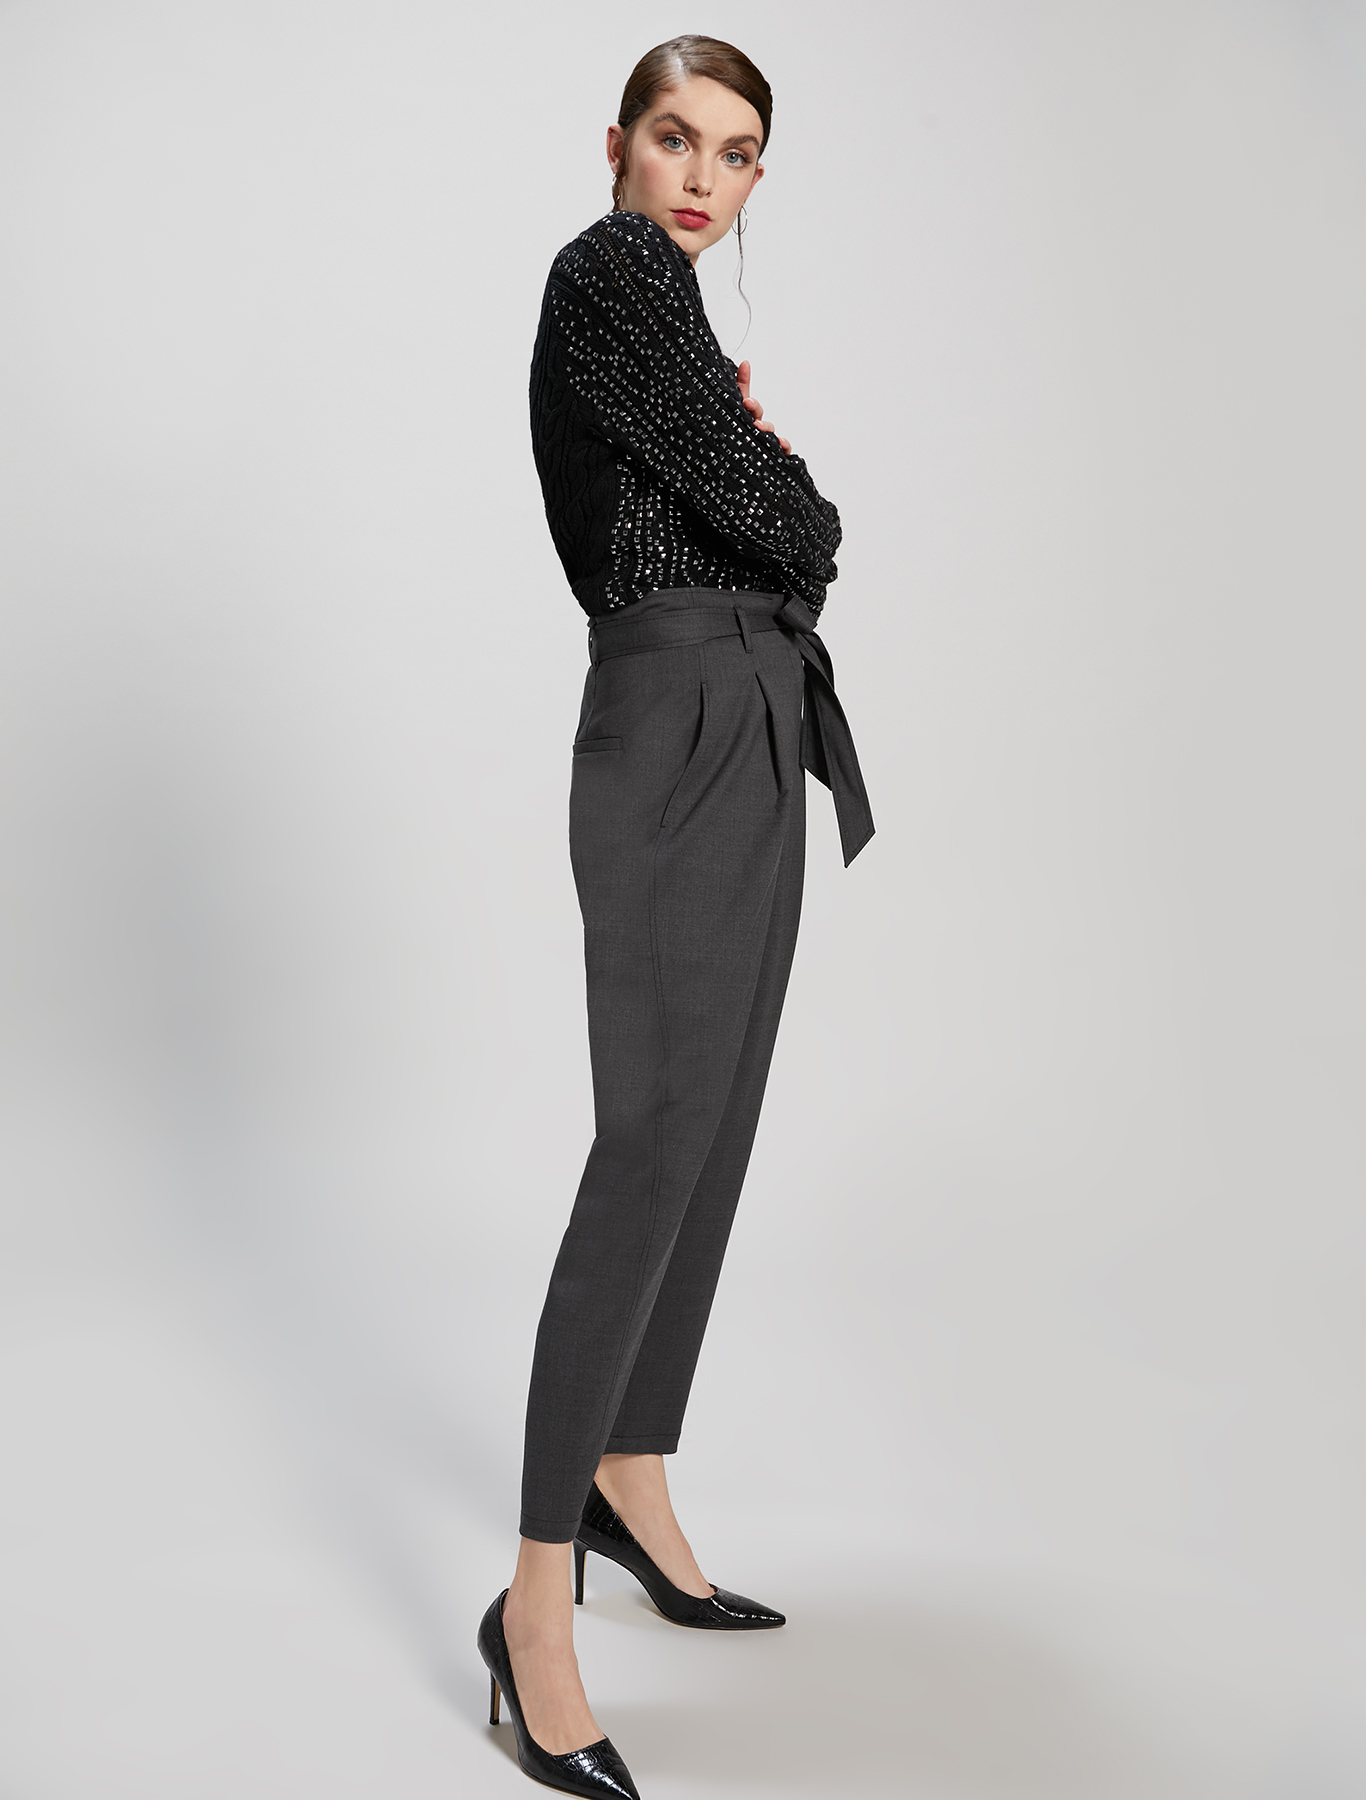 Wool twill trousers - dark grey - pennyblack